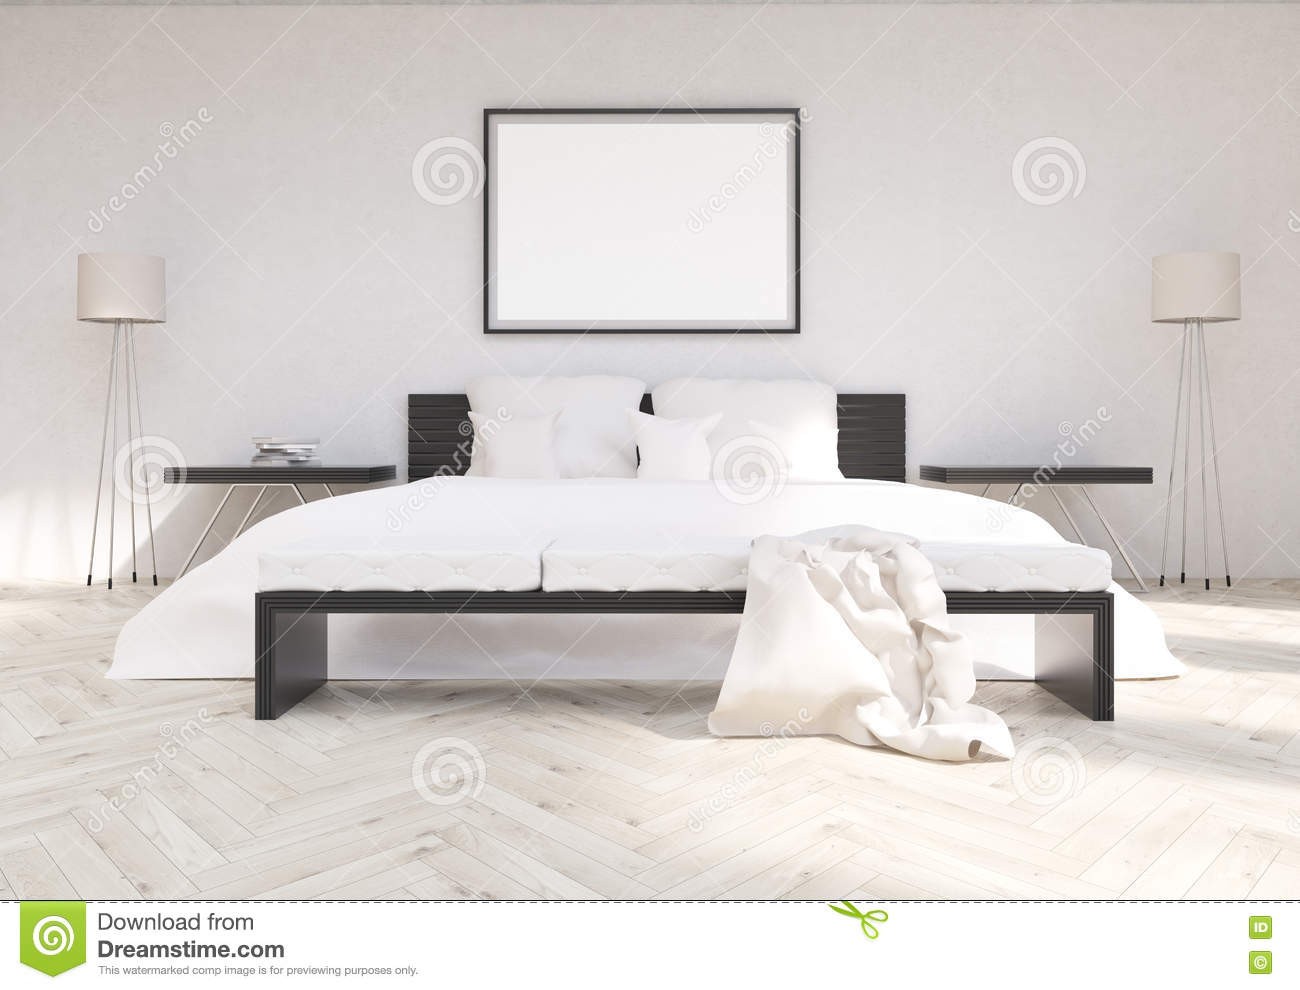 Bedroom Interior With Blank Frame Stock Illustration